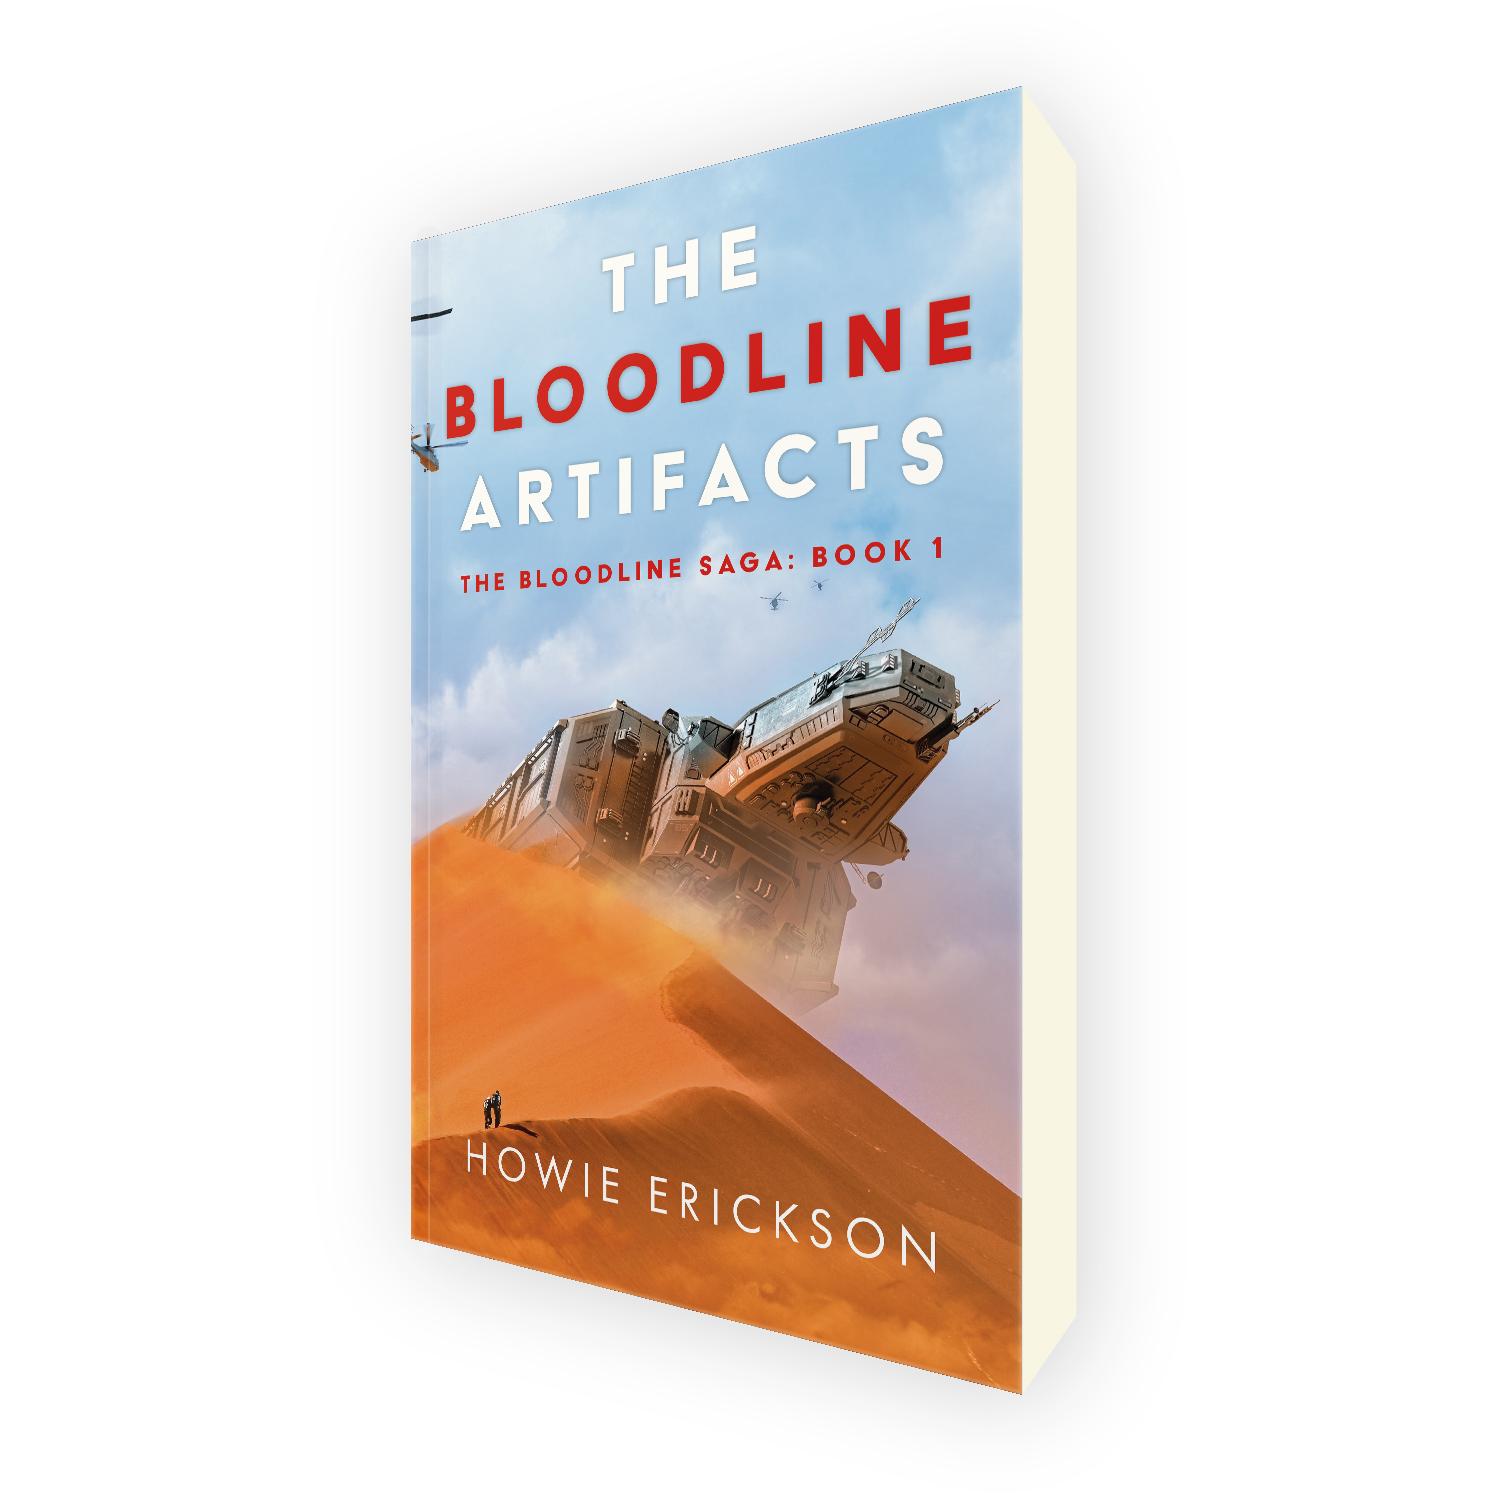 'The Bloodline Artifacts' is book one in a great dual-world scifi thriller series, by author Howie Erickson. The book cover was designed by Mark Thomas, of coverness.com. To find out more about my book design services, please visit www.coverness.com.